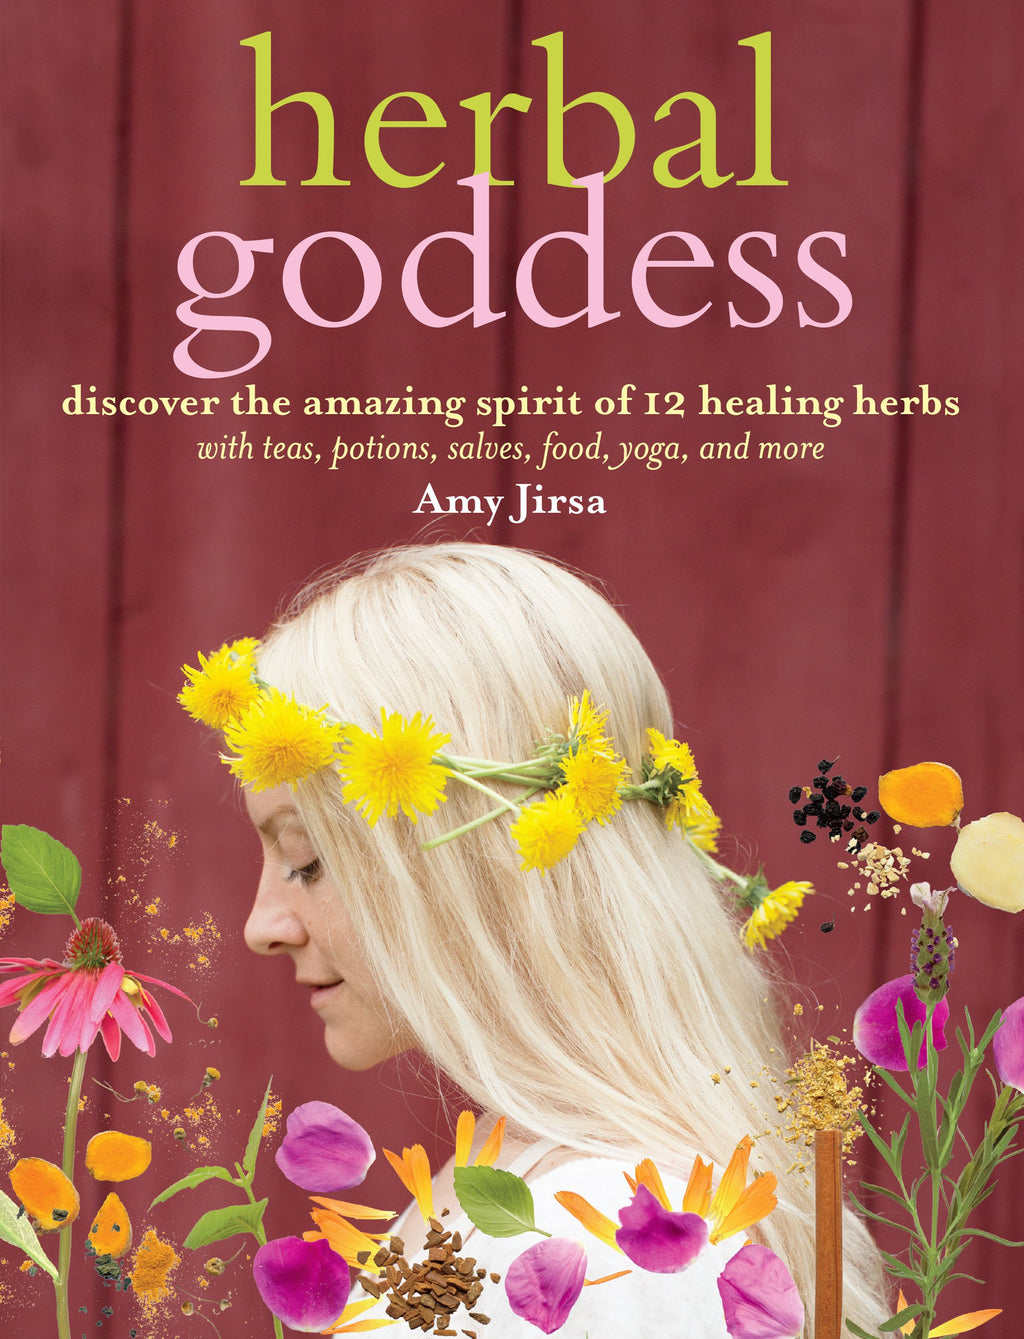 Herbal Goddess by Amy Jirsa